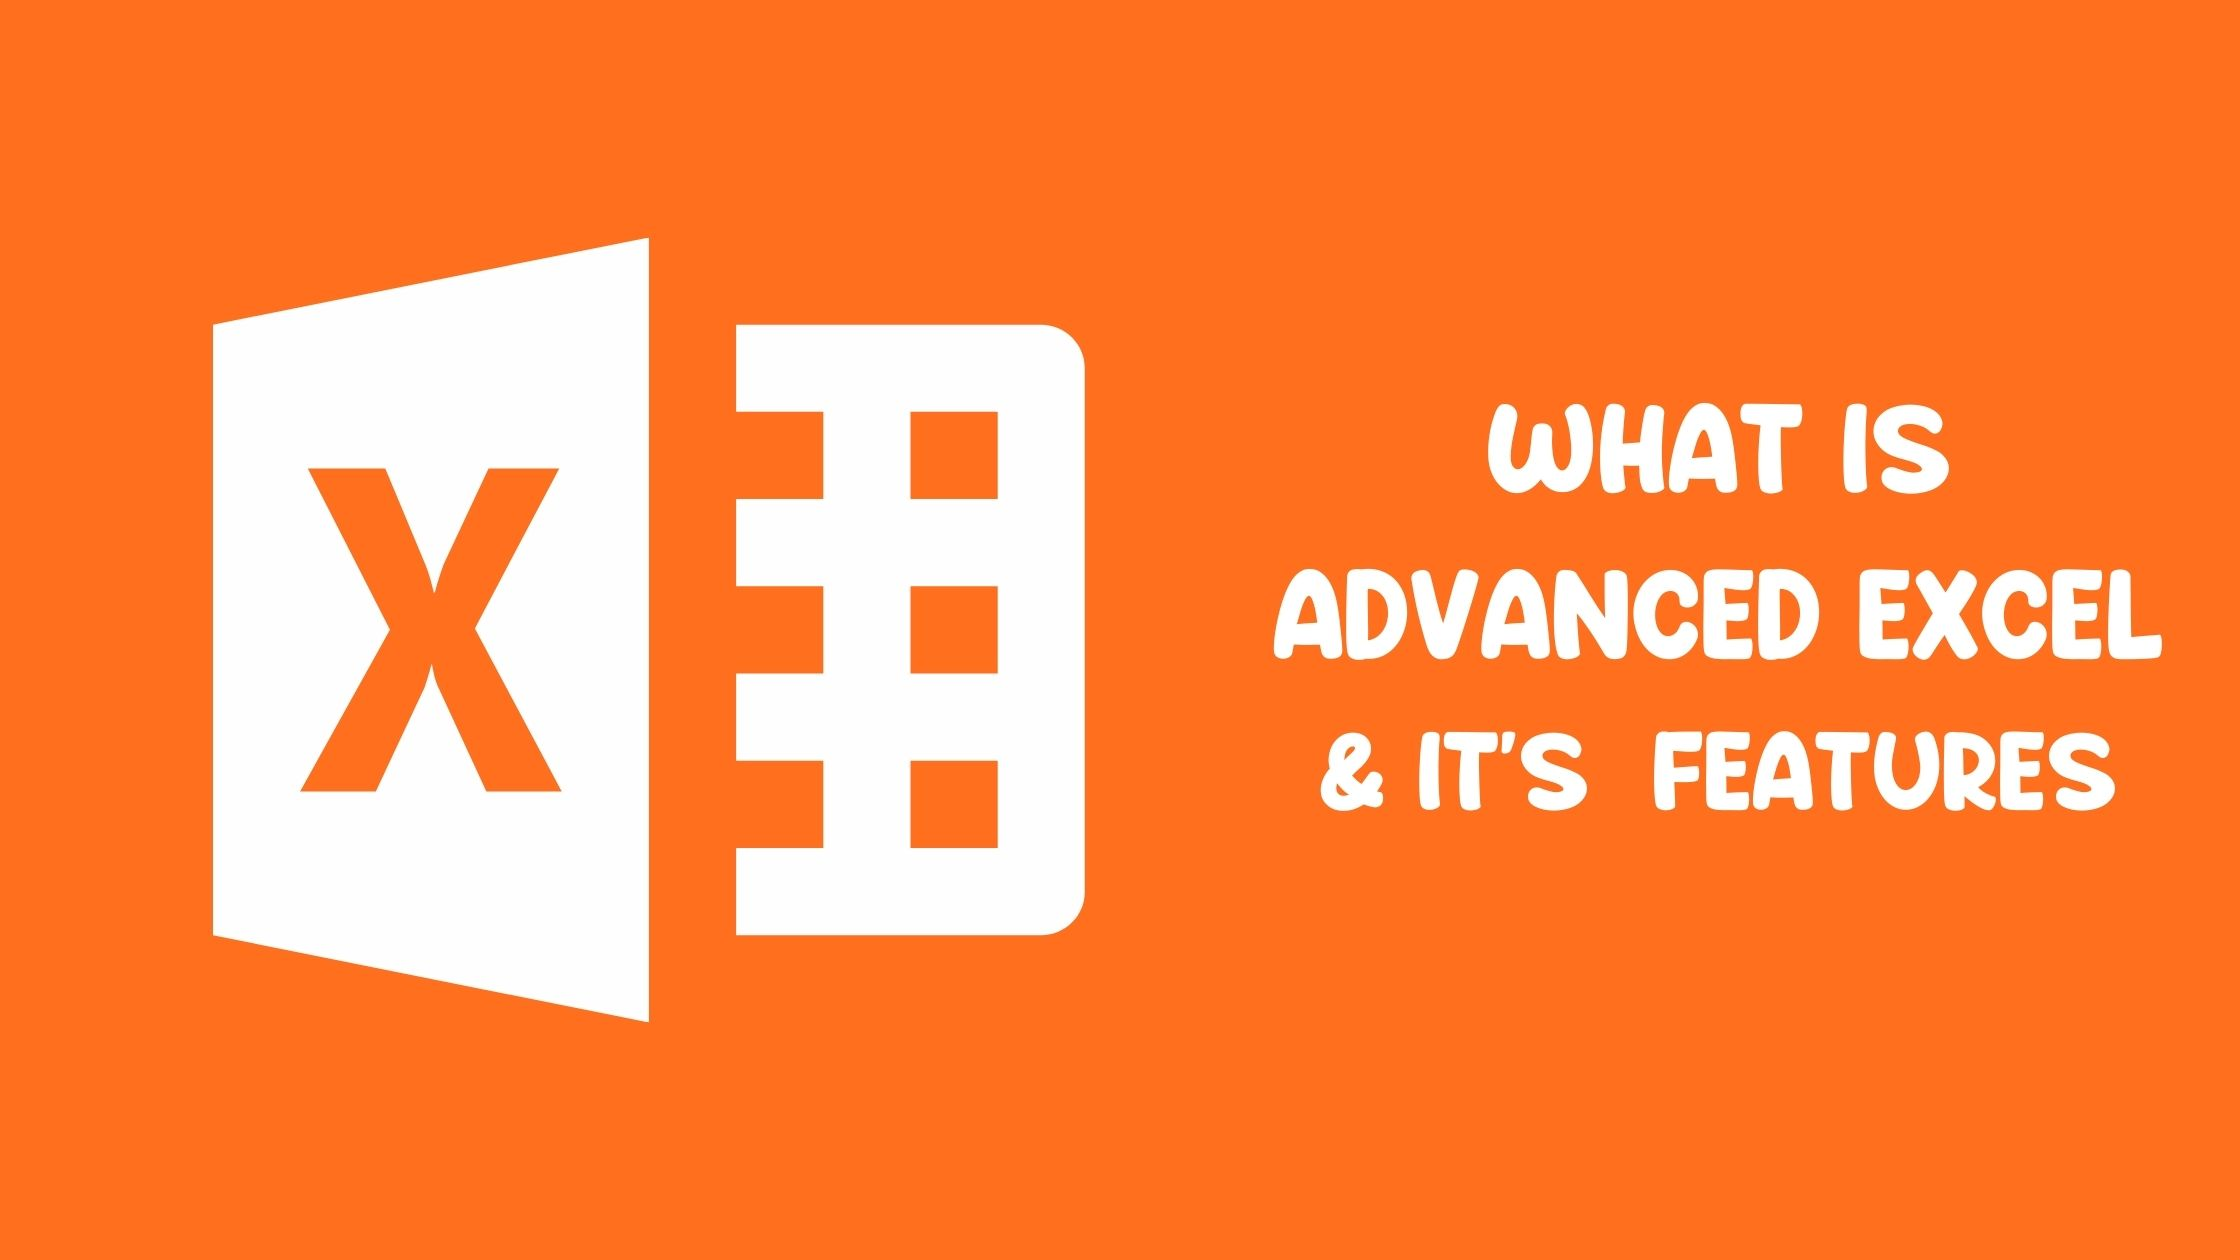 WHAT IS ADVANCED EXCEL.jpg